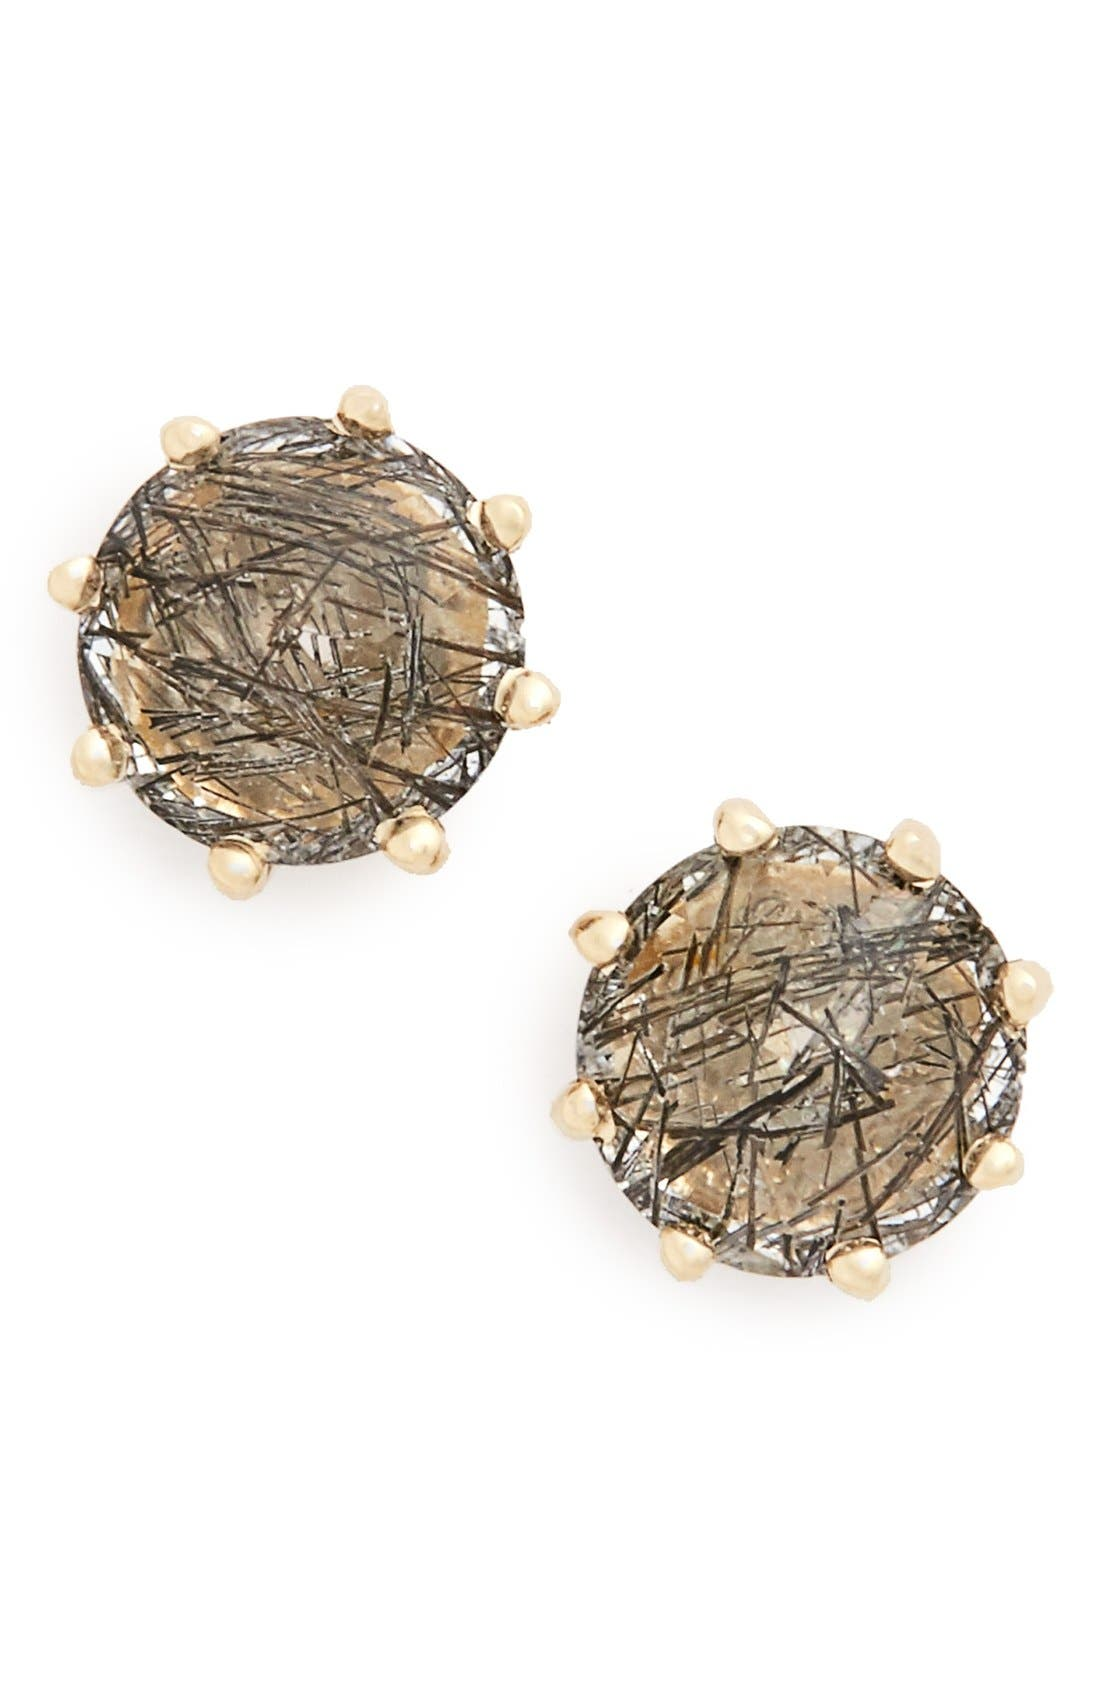 Main Image - Anna Sheffield 'Eleanor' Black Rutilated Quartz Stud Earrings